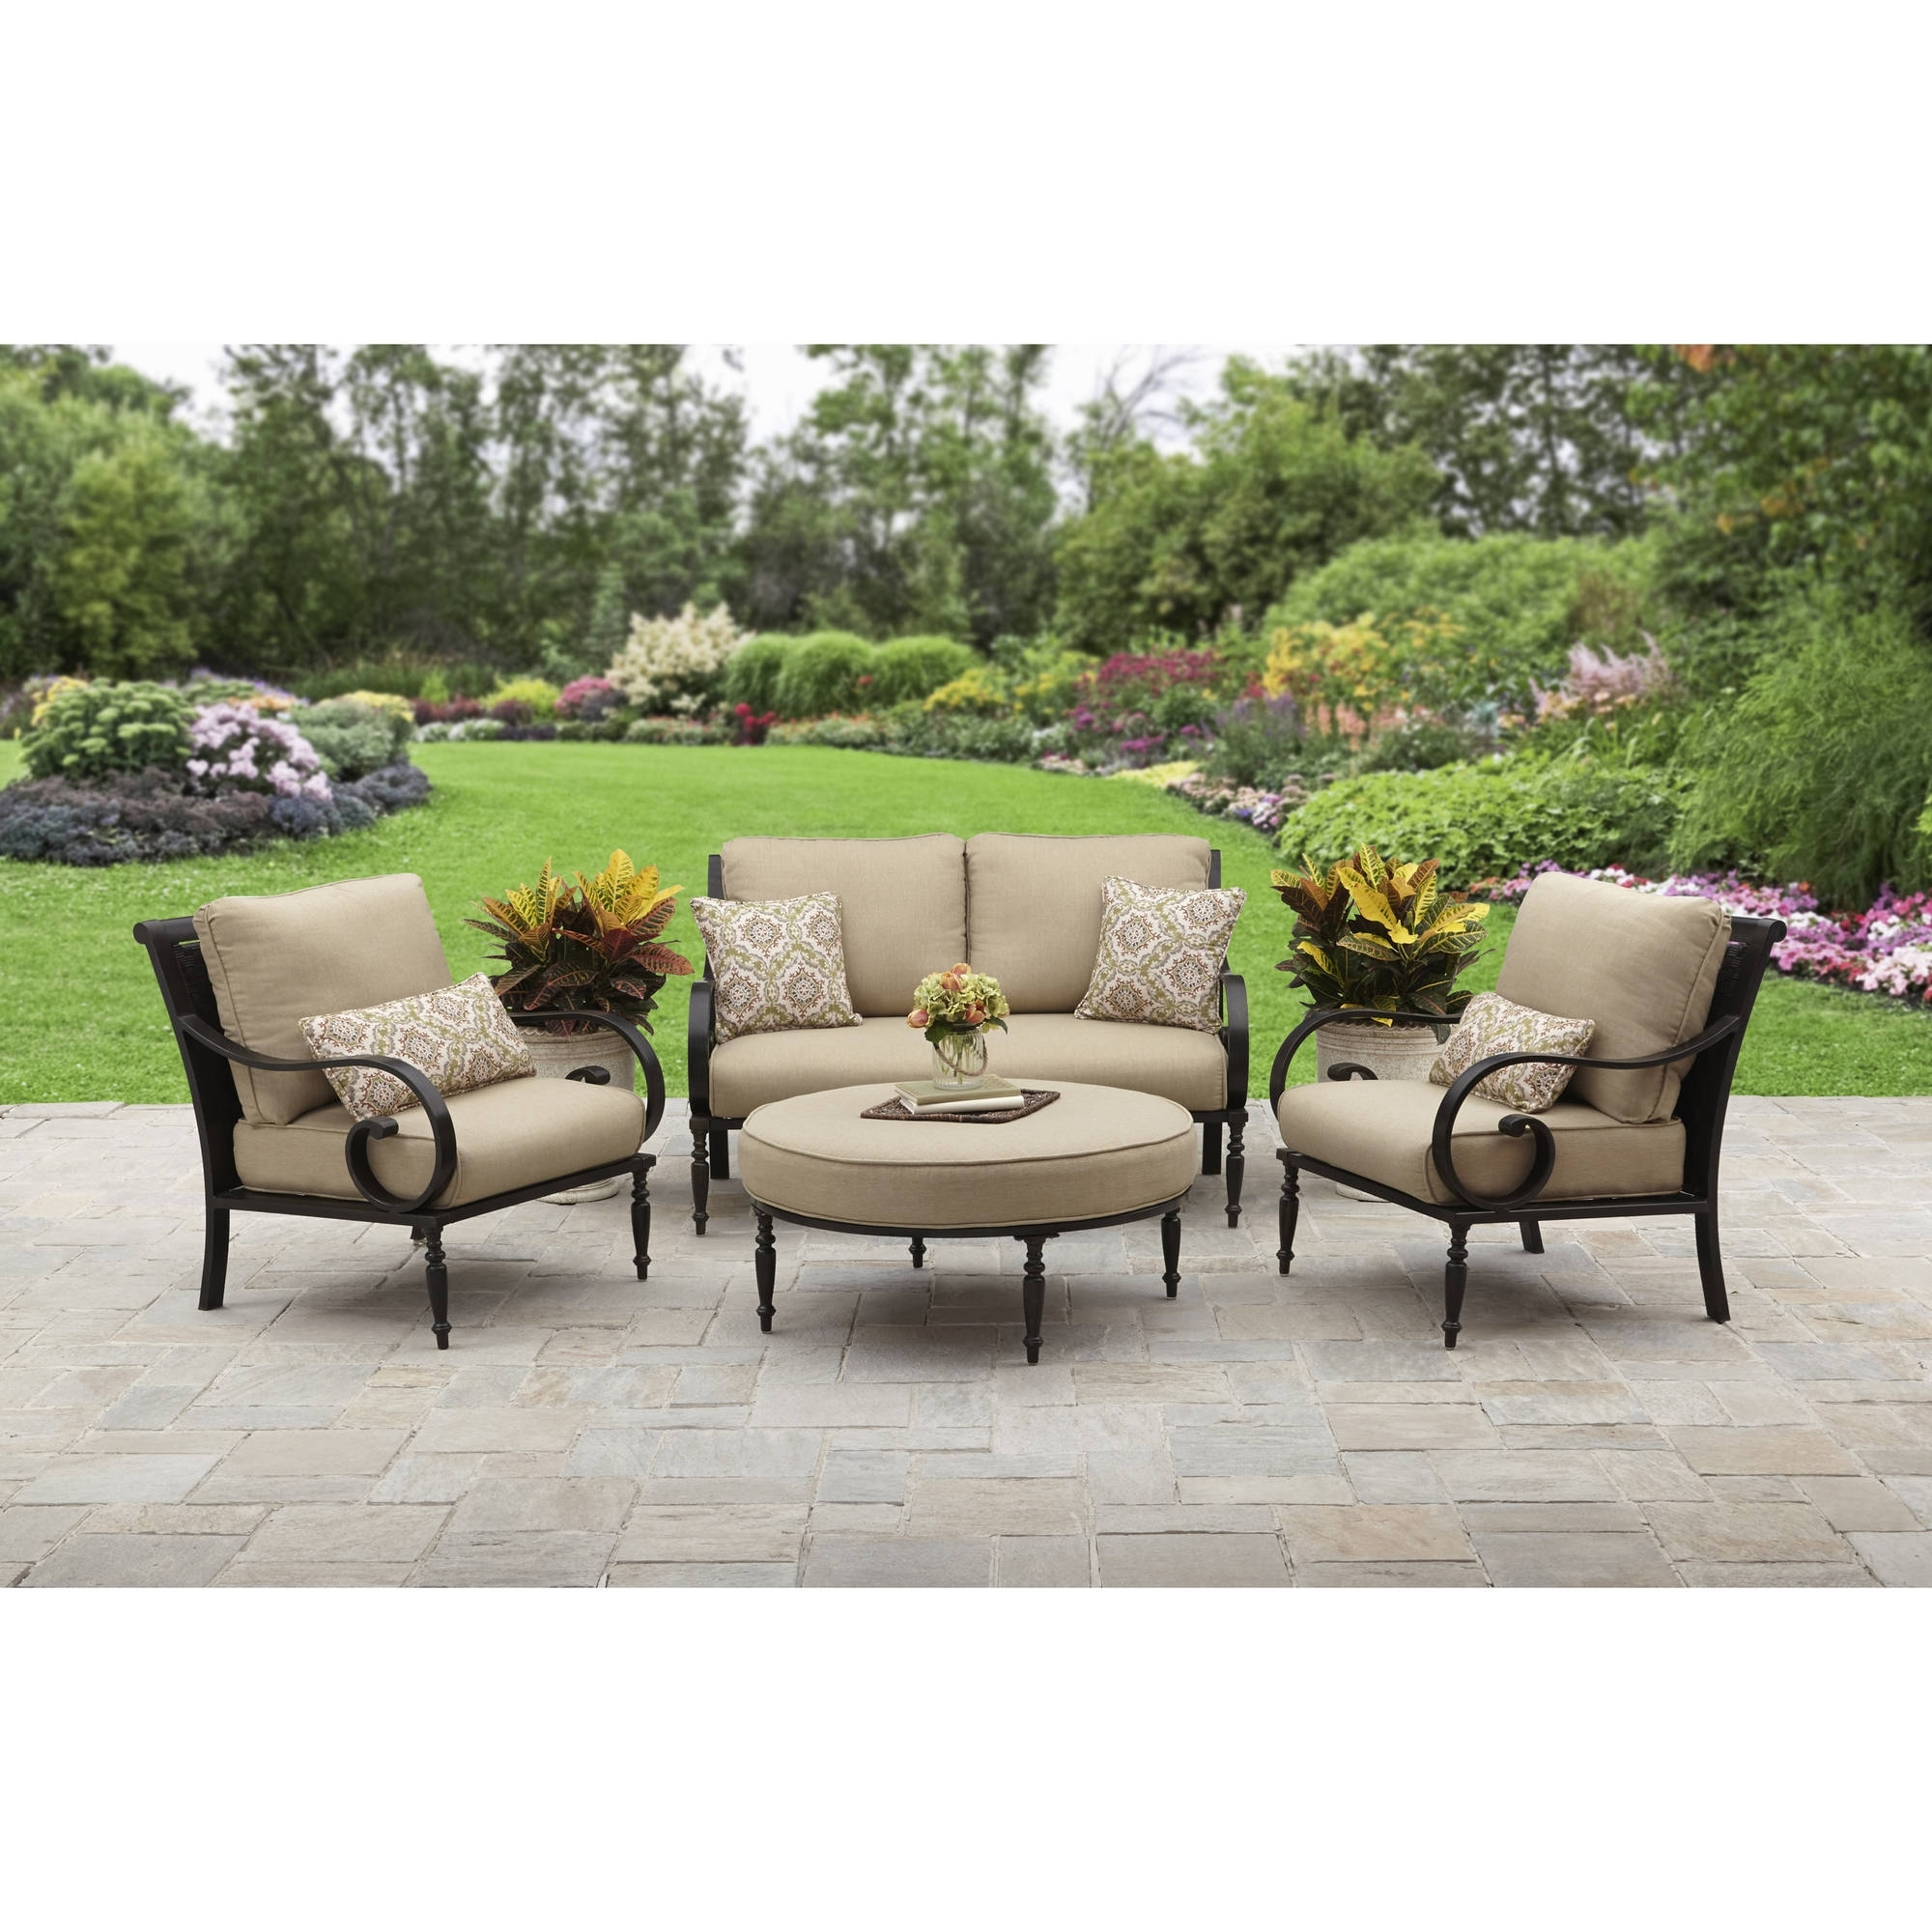 Patio Conversation Sets At Walmart Regarding Famous Better Homes And Gardens Camrose Farmhouse Outdoor Conversation Set (View 10 of 15)